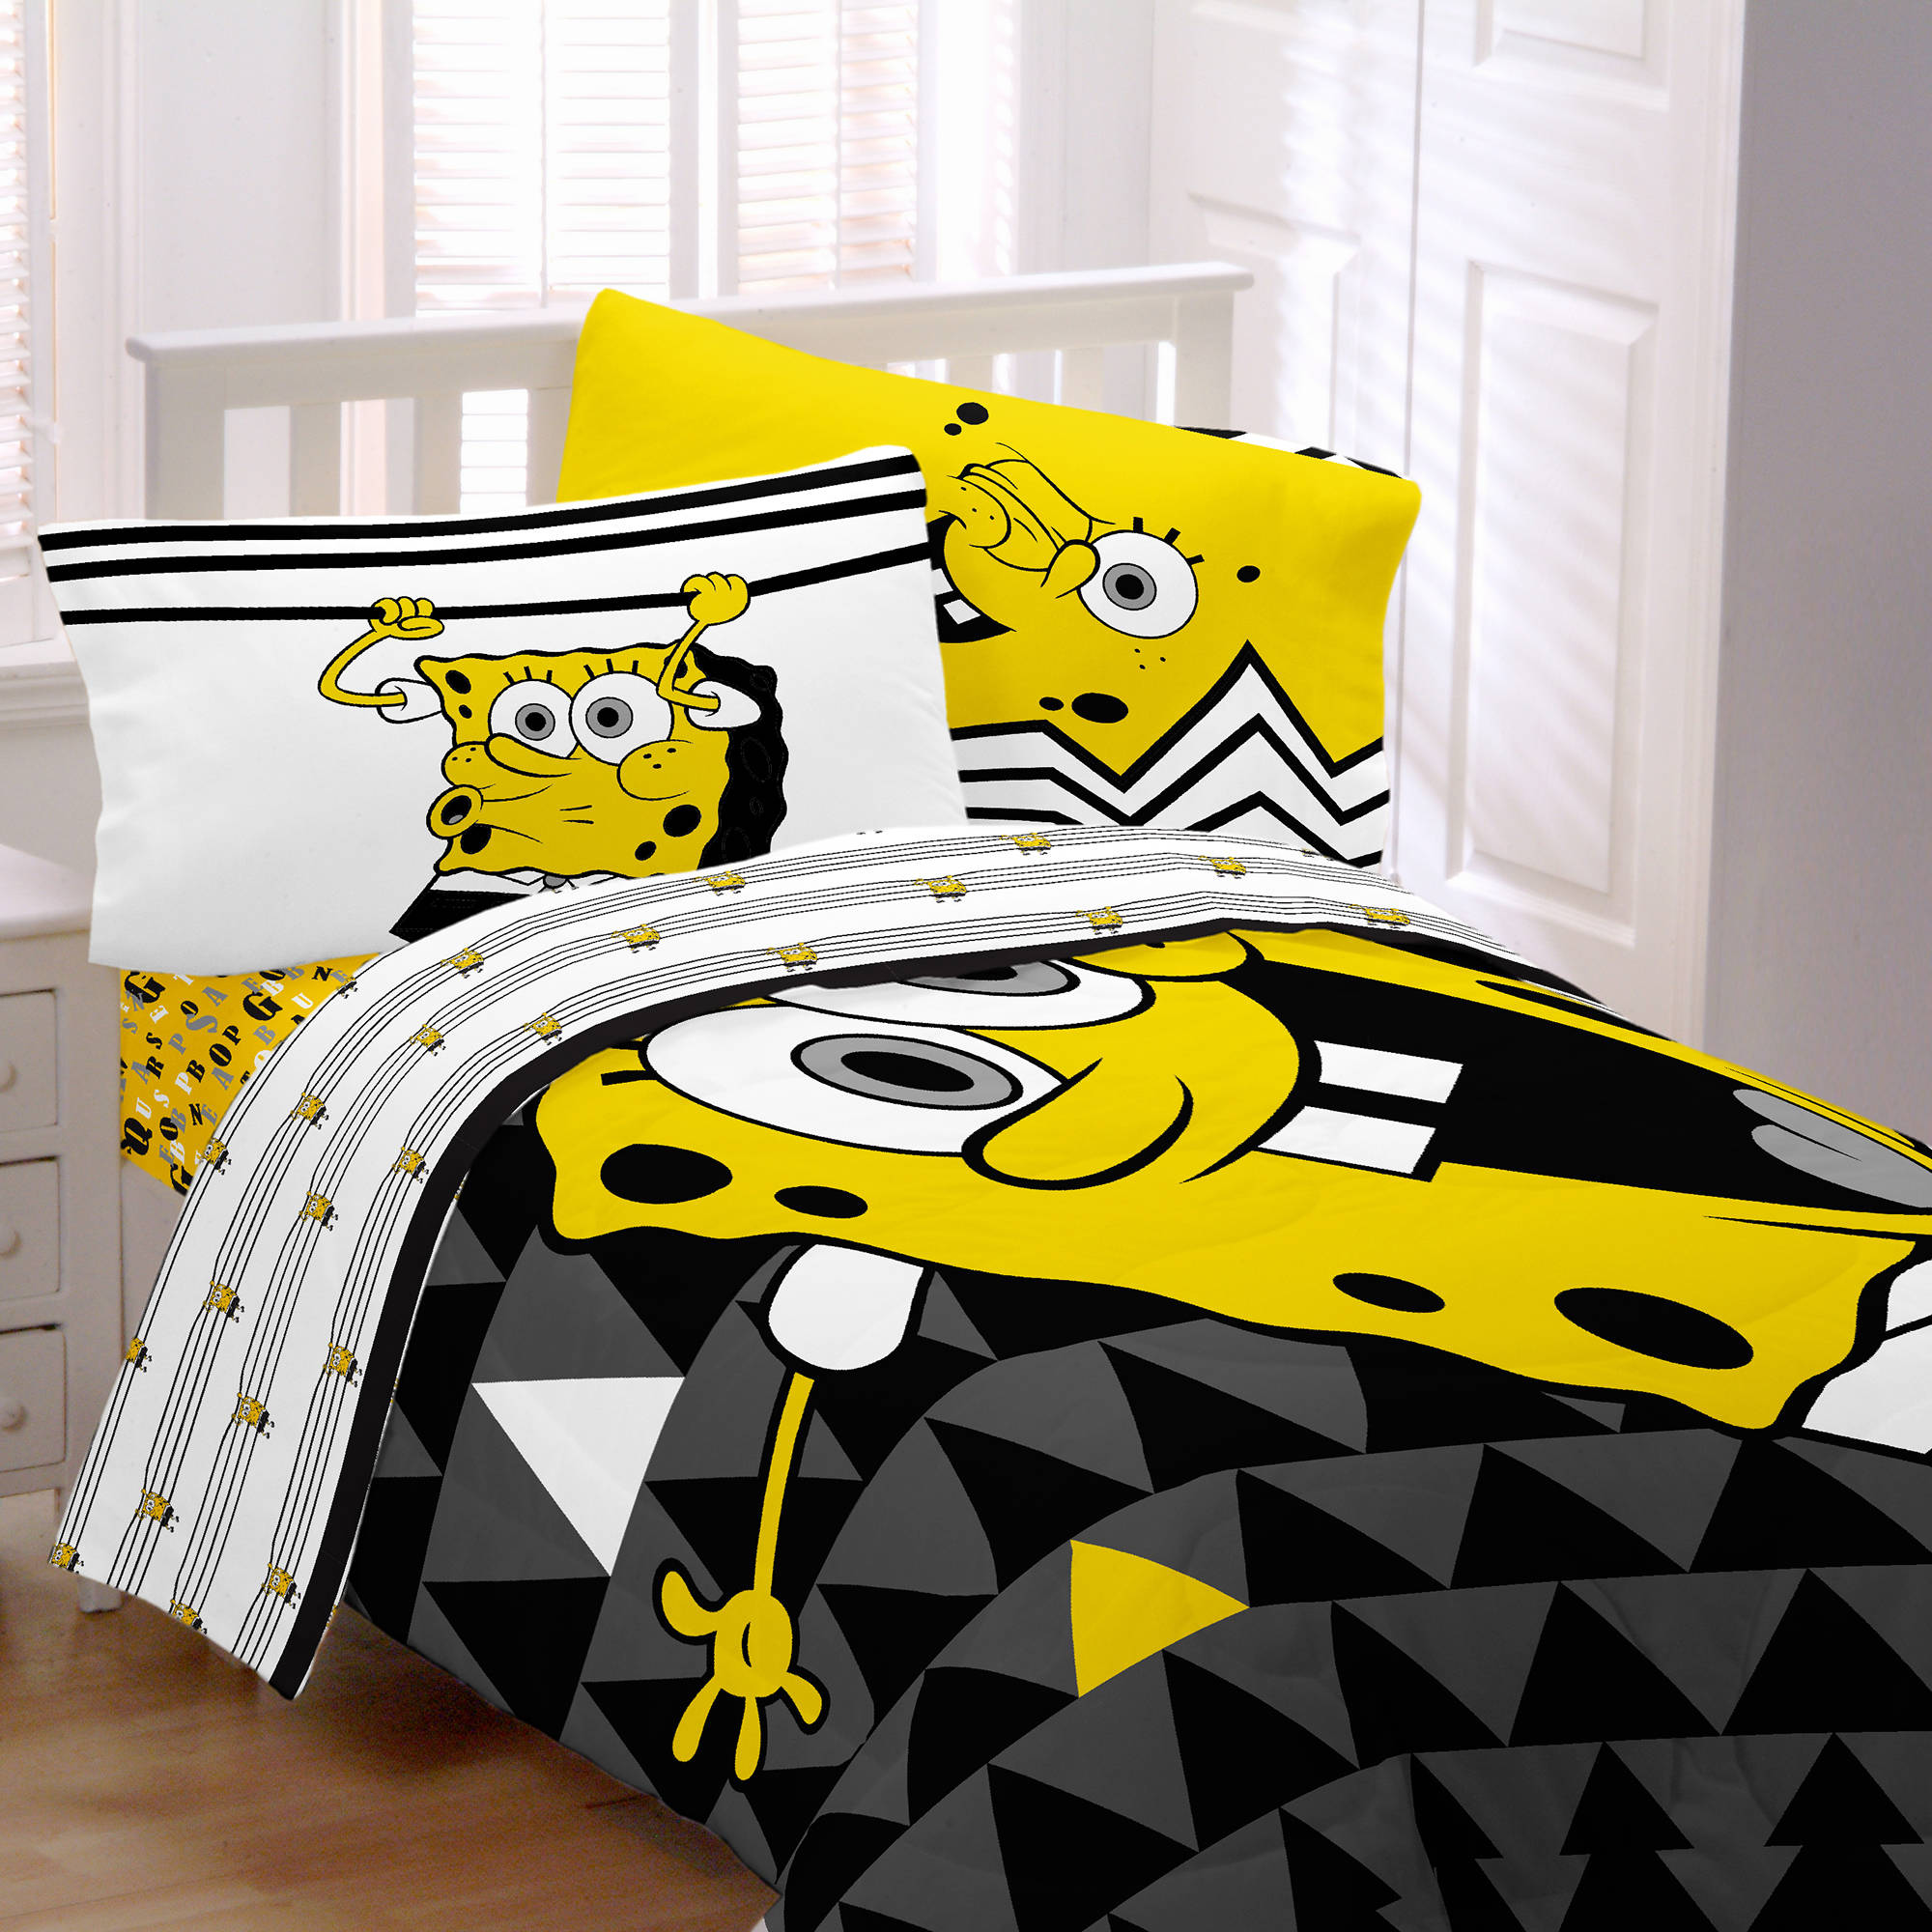 Nickelodeon's SpongeBob Try Angle Reversible Twin/Full Comforter